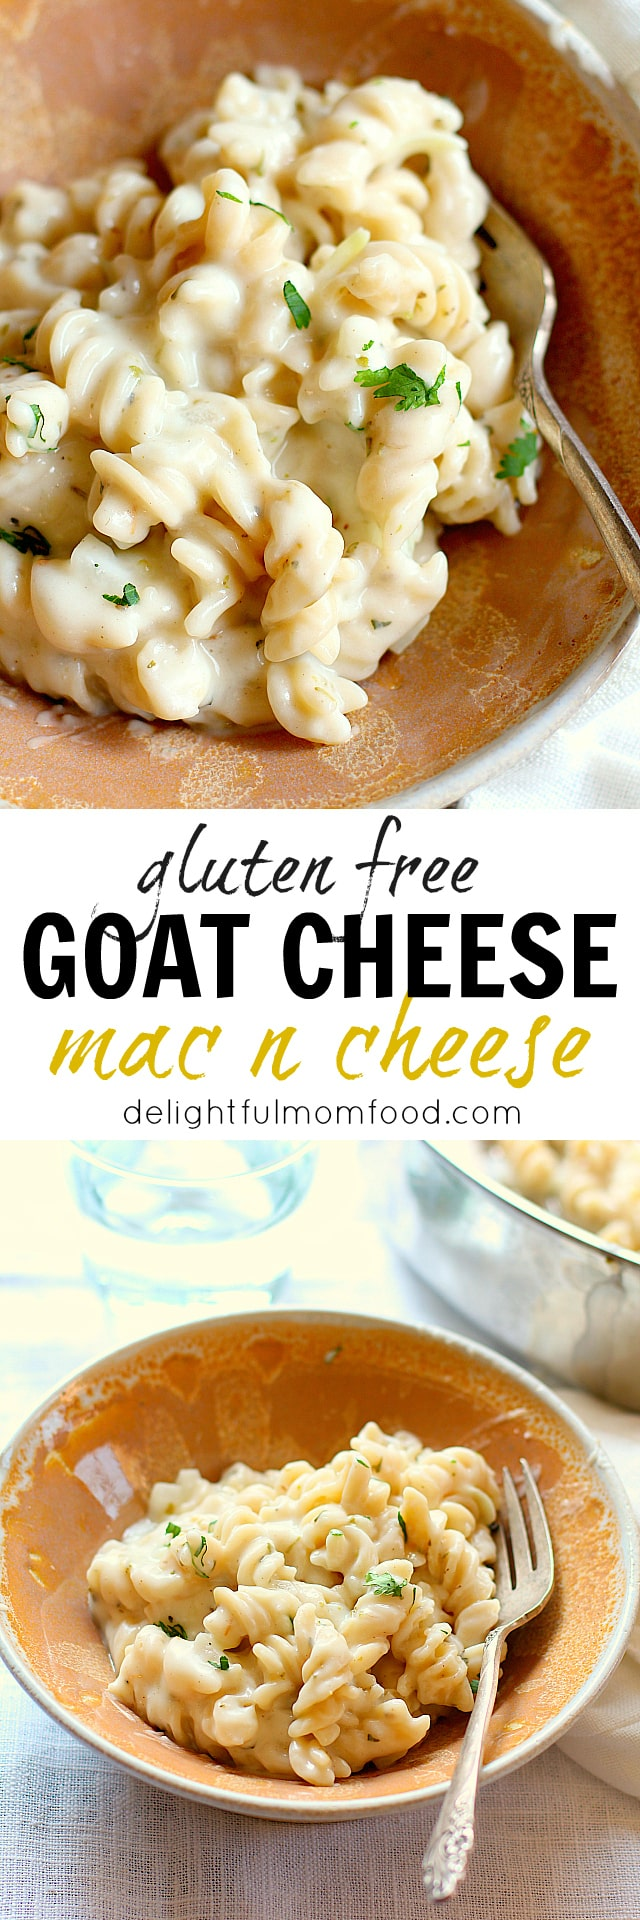 Skillet Macaroni and Cheese Made With Goat Cheese